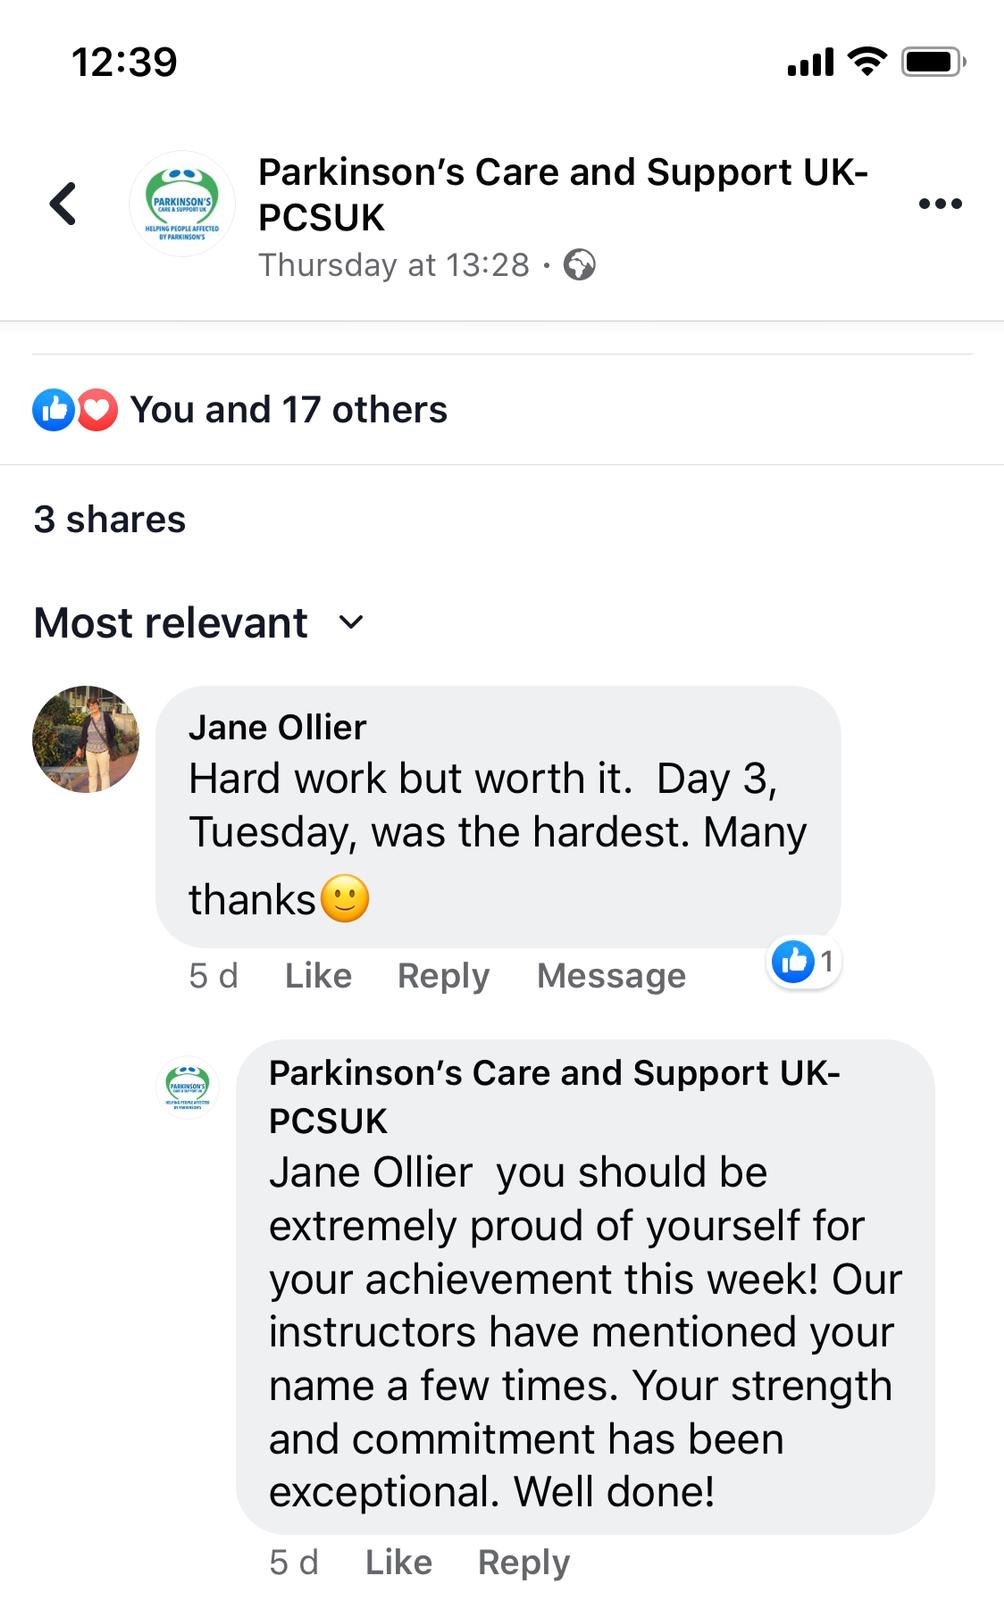 Parkinson's Care & Support